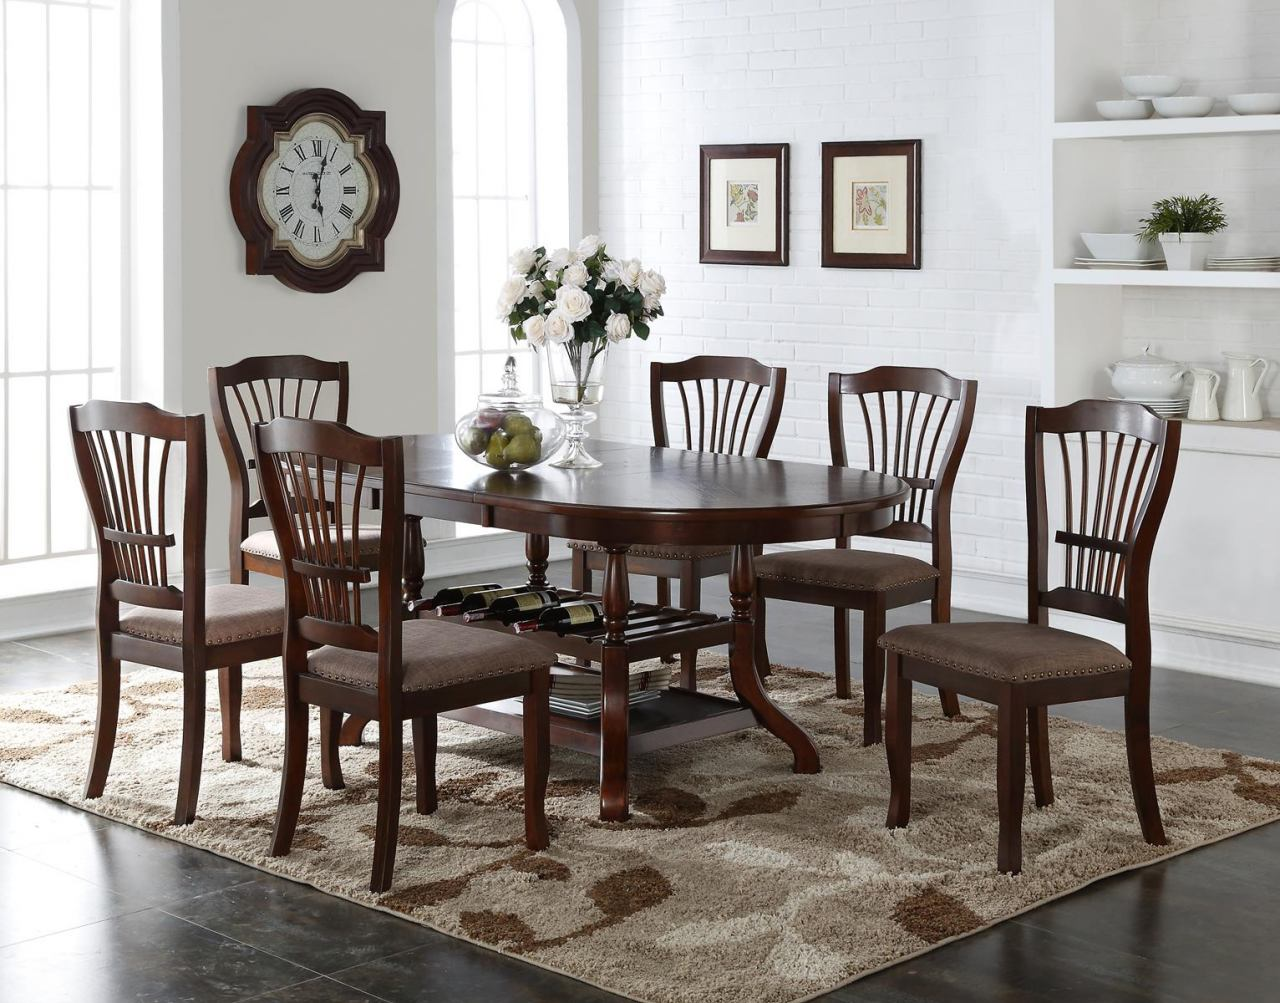 best 7pc dining room set photos ltrevents com best 7pc dining room set photos ltrevents com